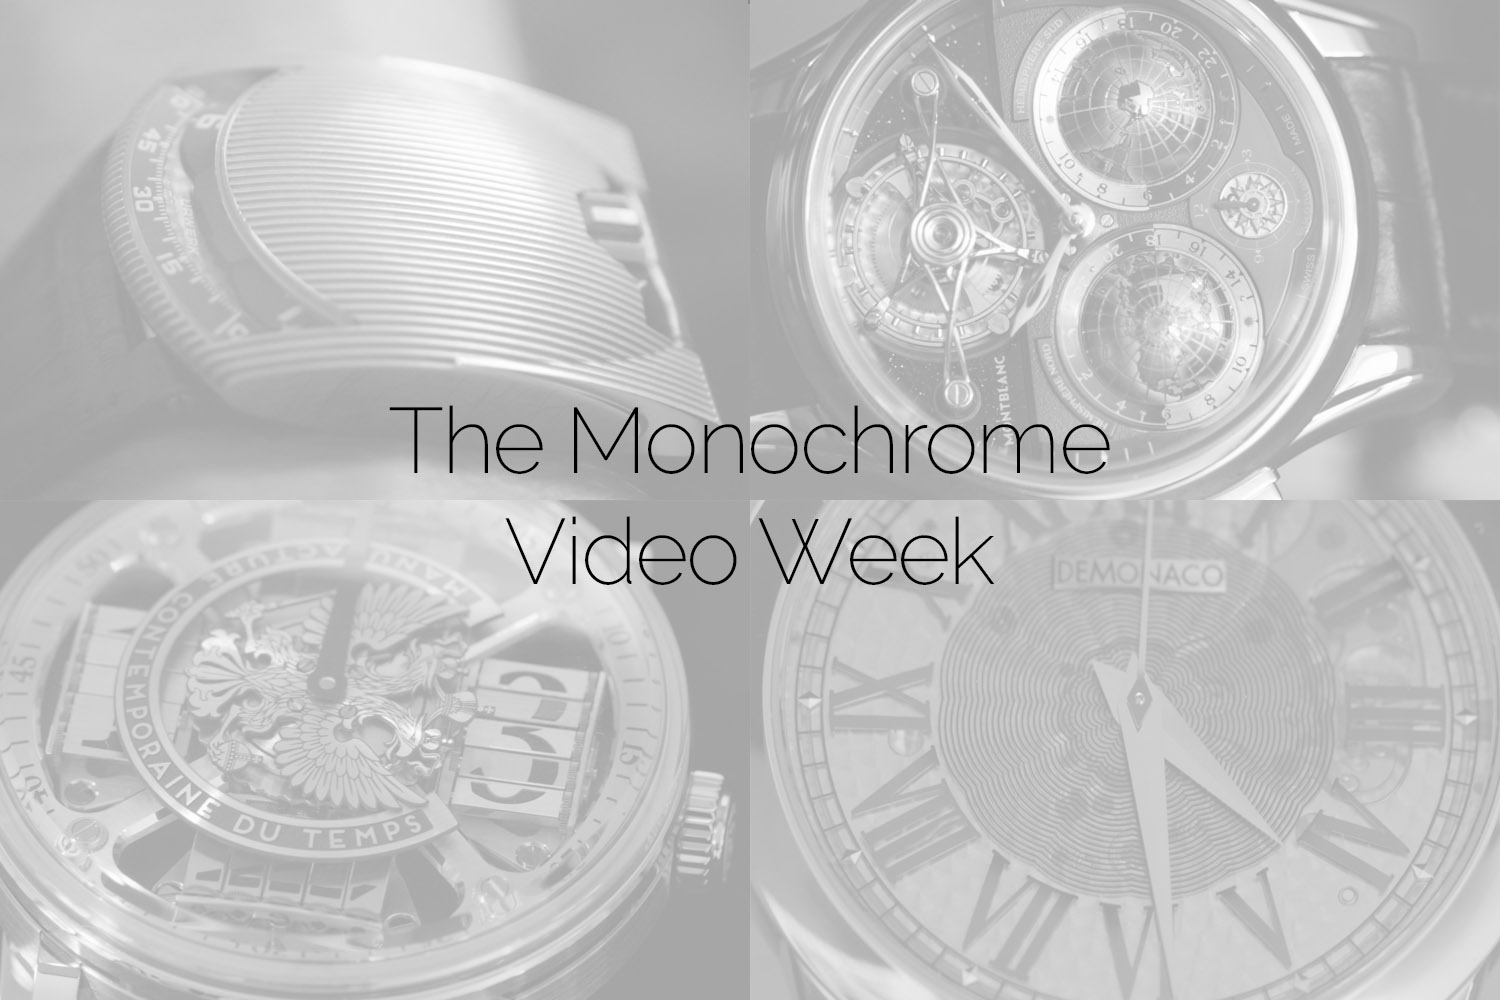 The Monochrome Video Week